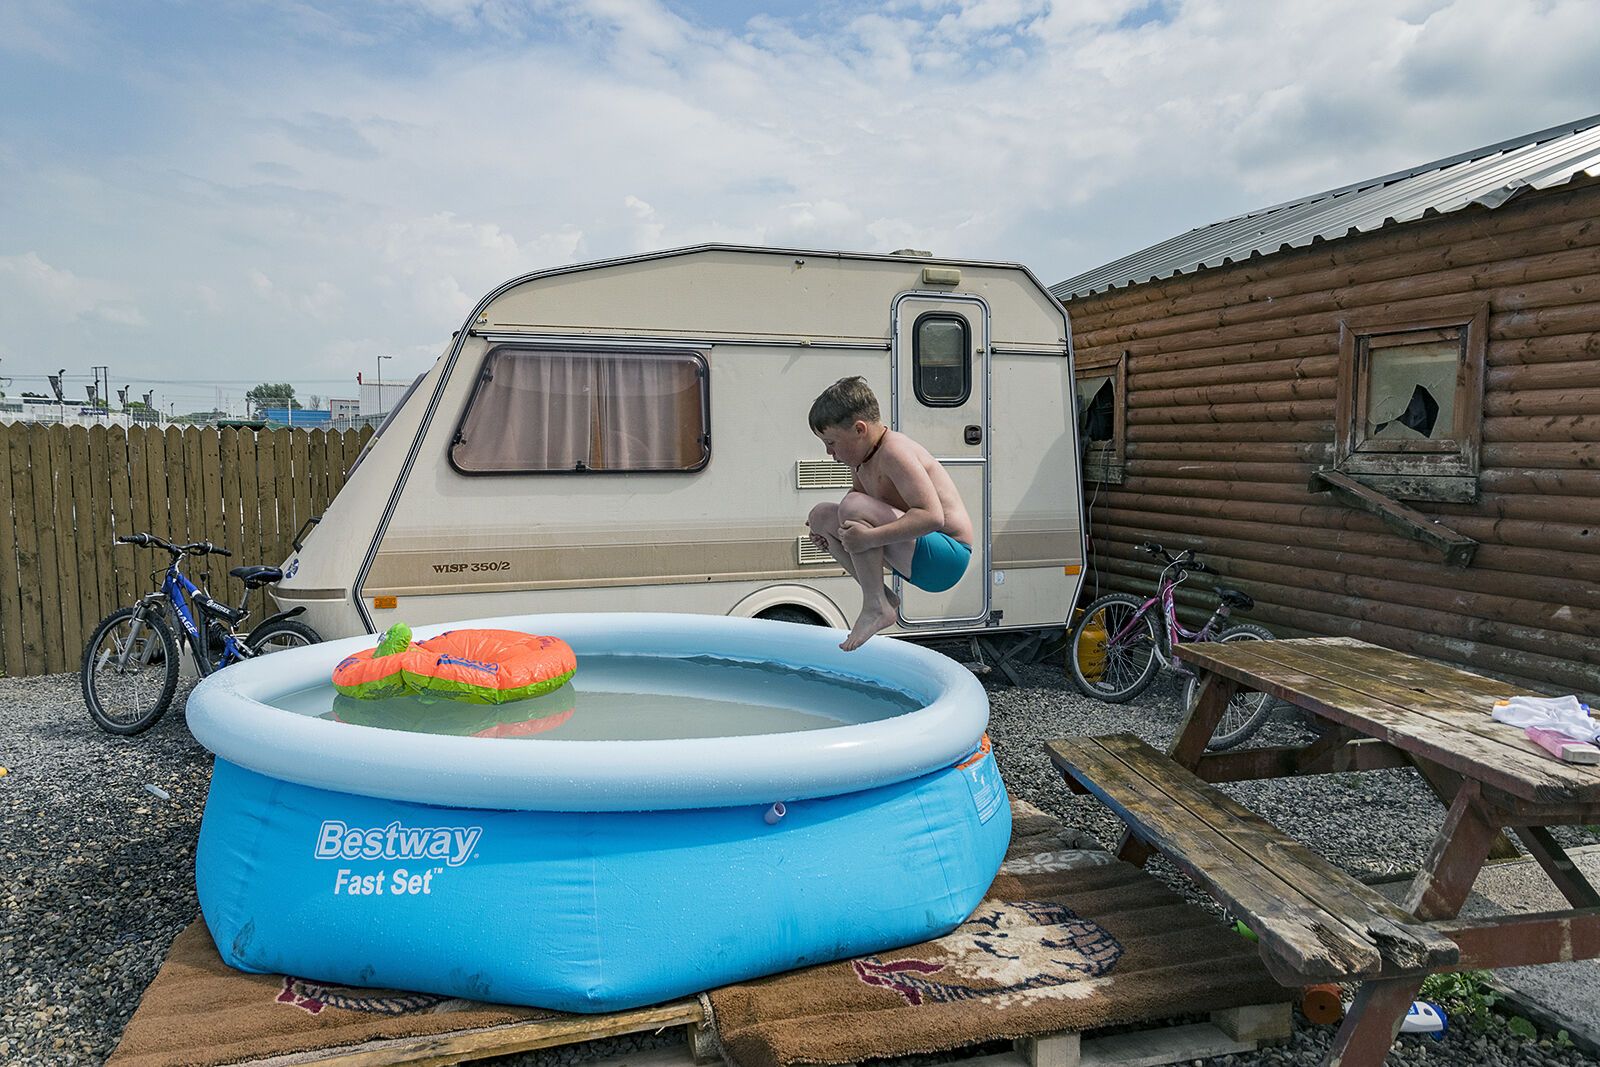 Mikey jumps into the pool during a rare heatwave, Limerick, Ireland 2018